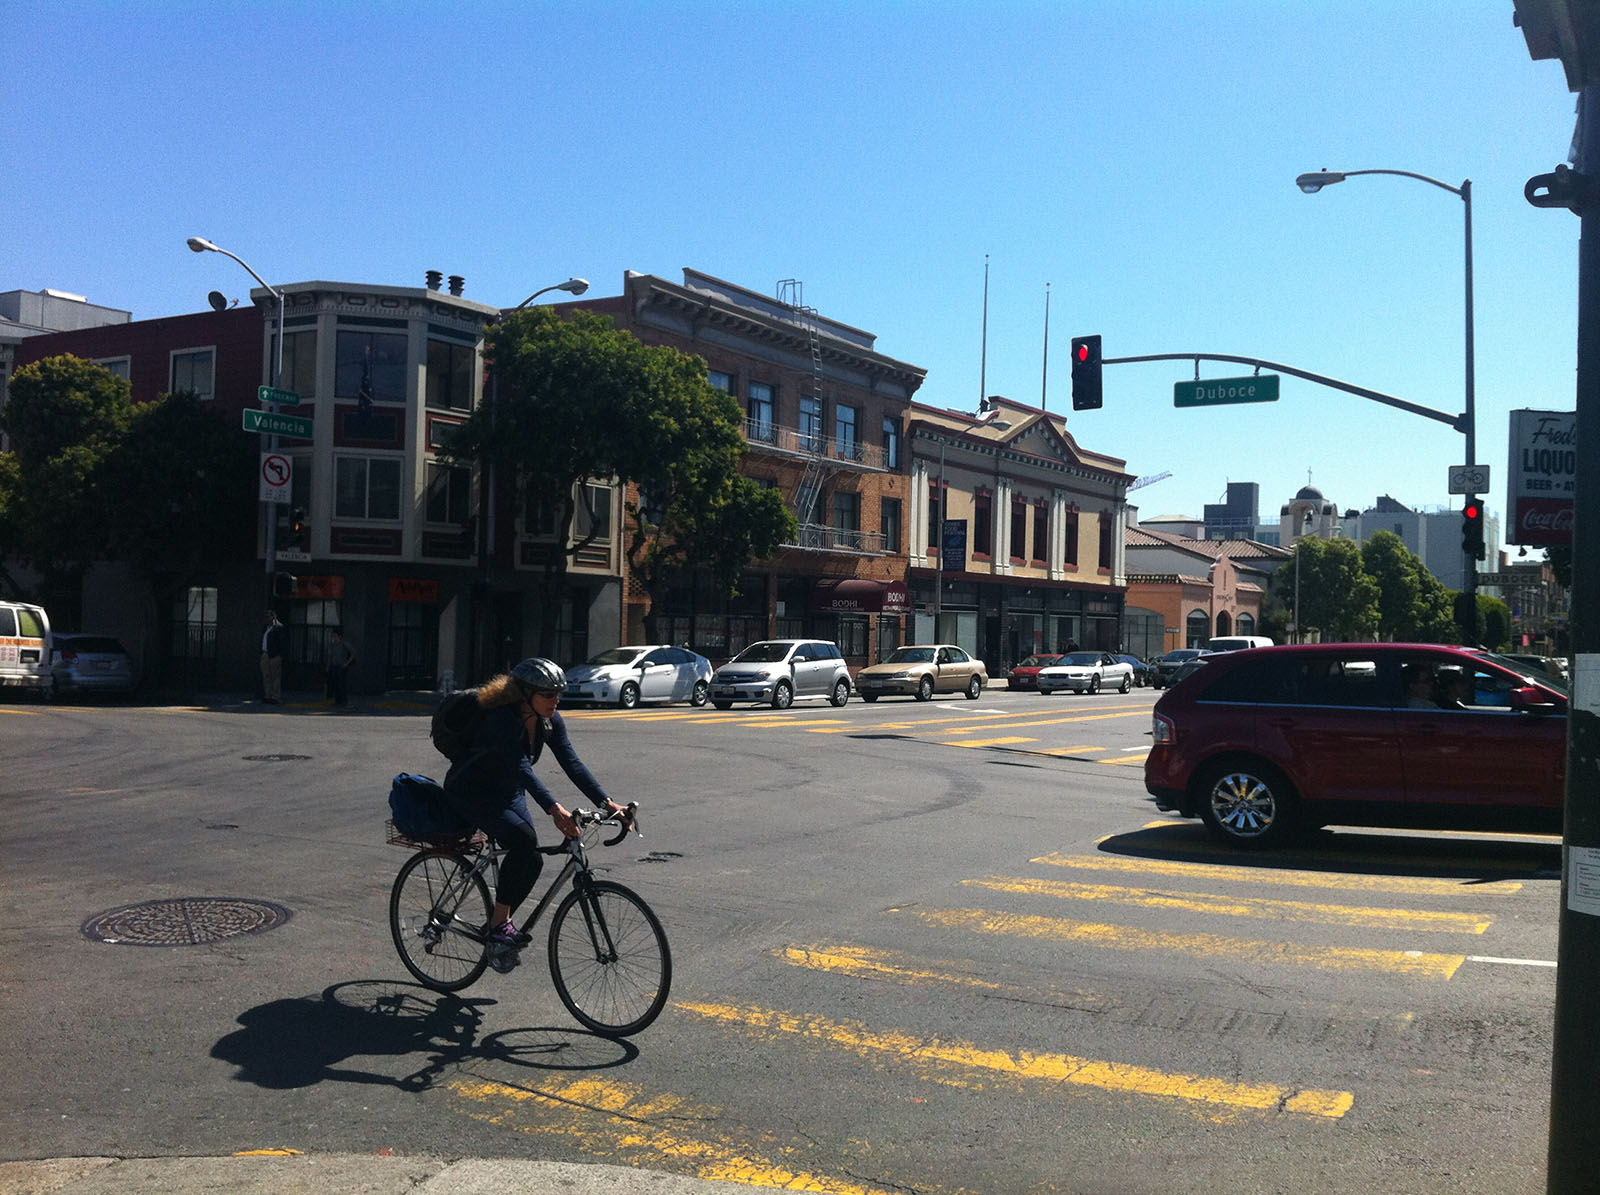 The intersection of Duboce Avenue and Valencia Street ranks fifth in the Highest Injury Collisions Intersections for San Francisco between 2009 and 2011.